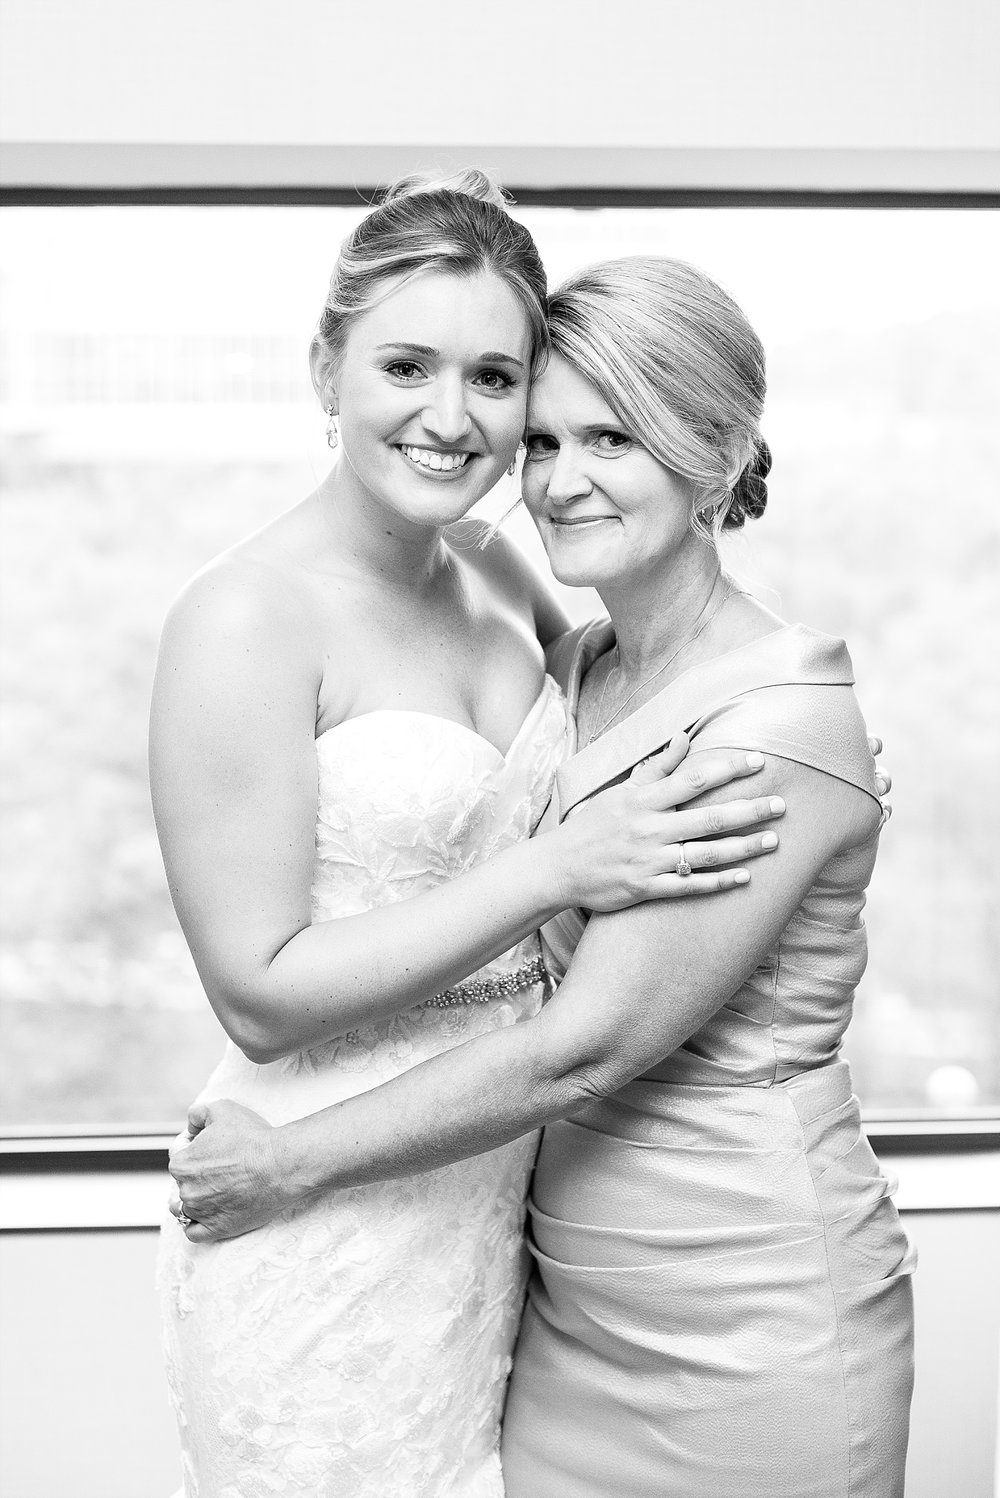 This mother and daughter have the sweetest relationship! Both were wonderful to work with!